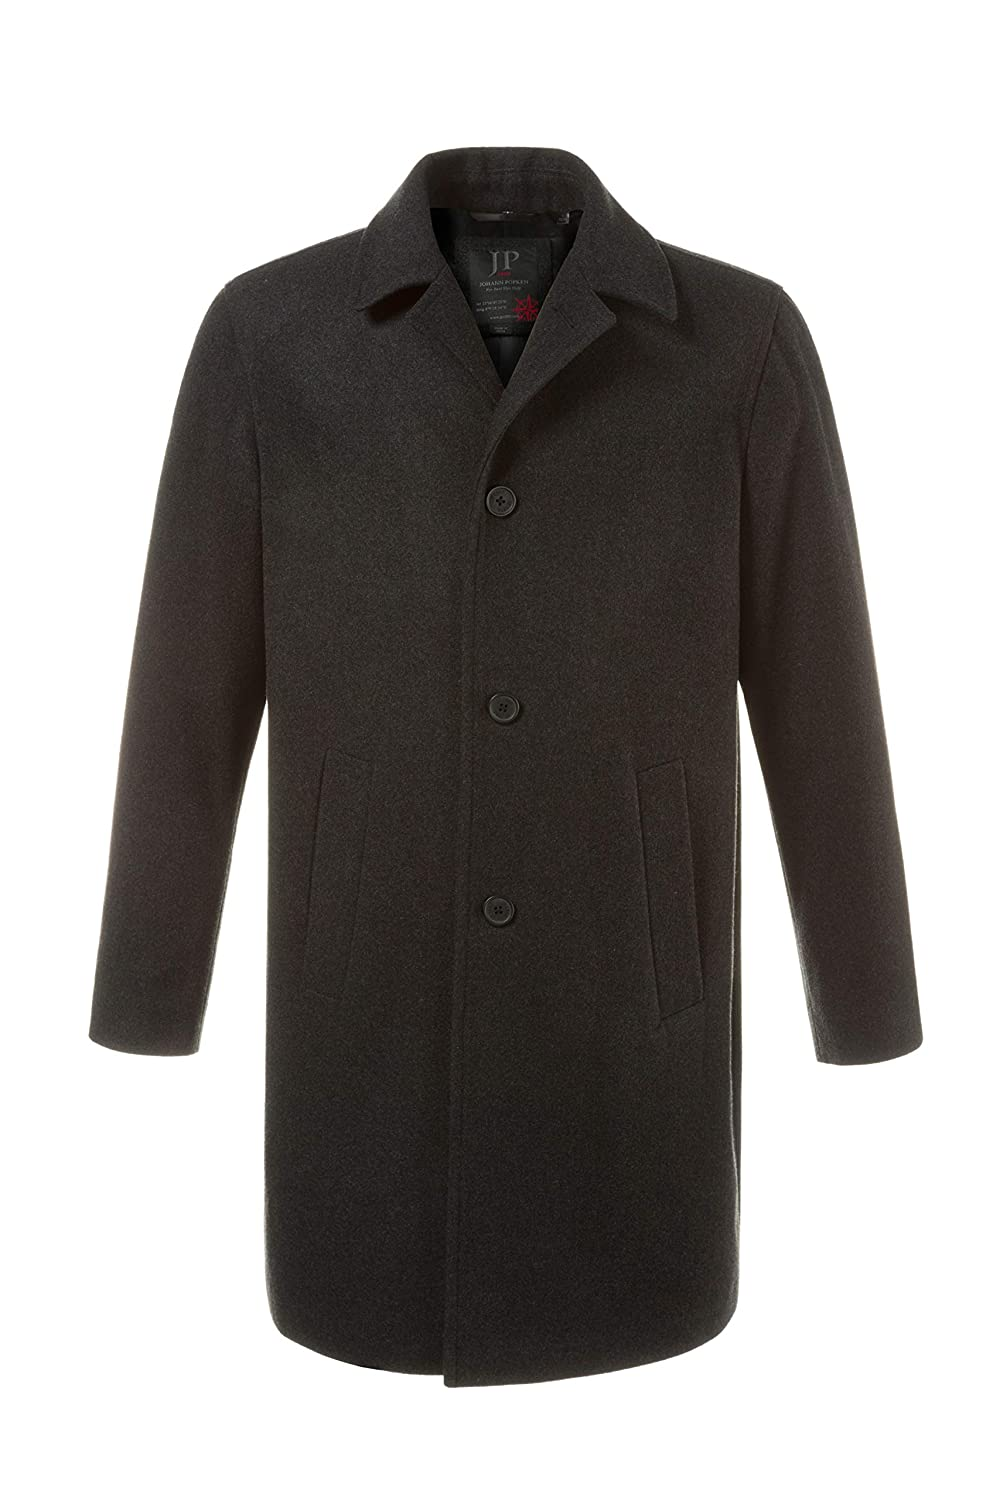 JP 1880 Mens Wollmantel Coat